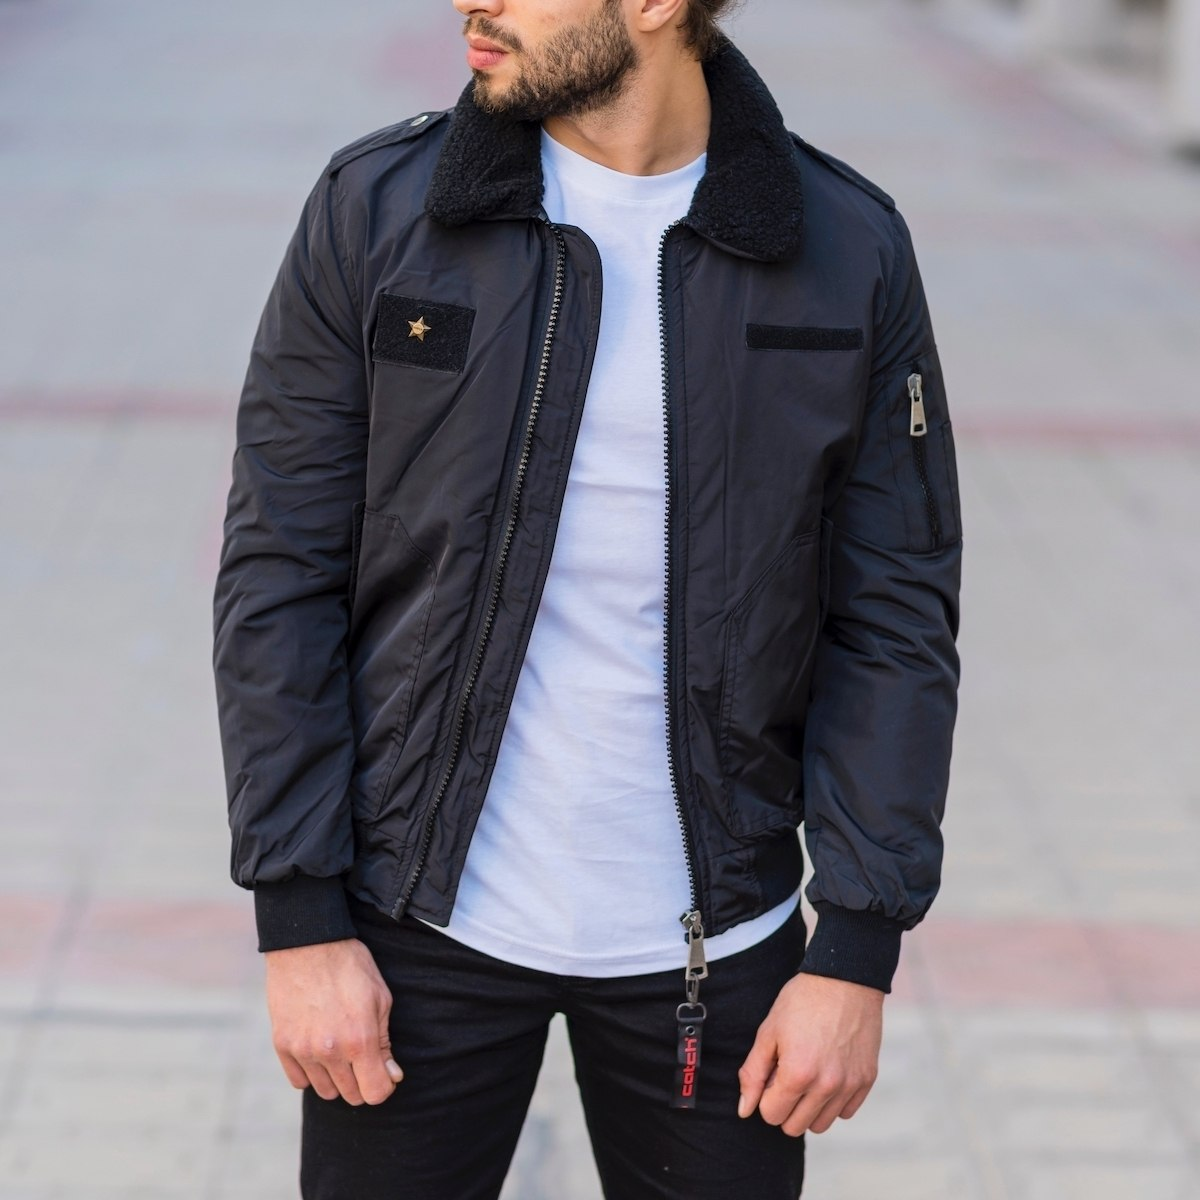 Men's Pilot Jacket In Black